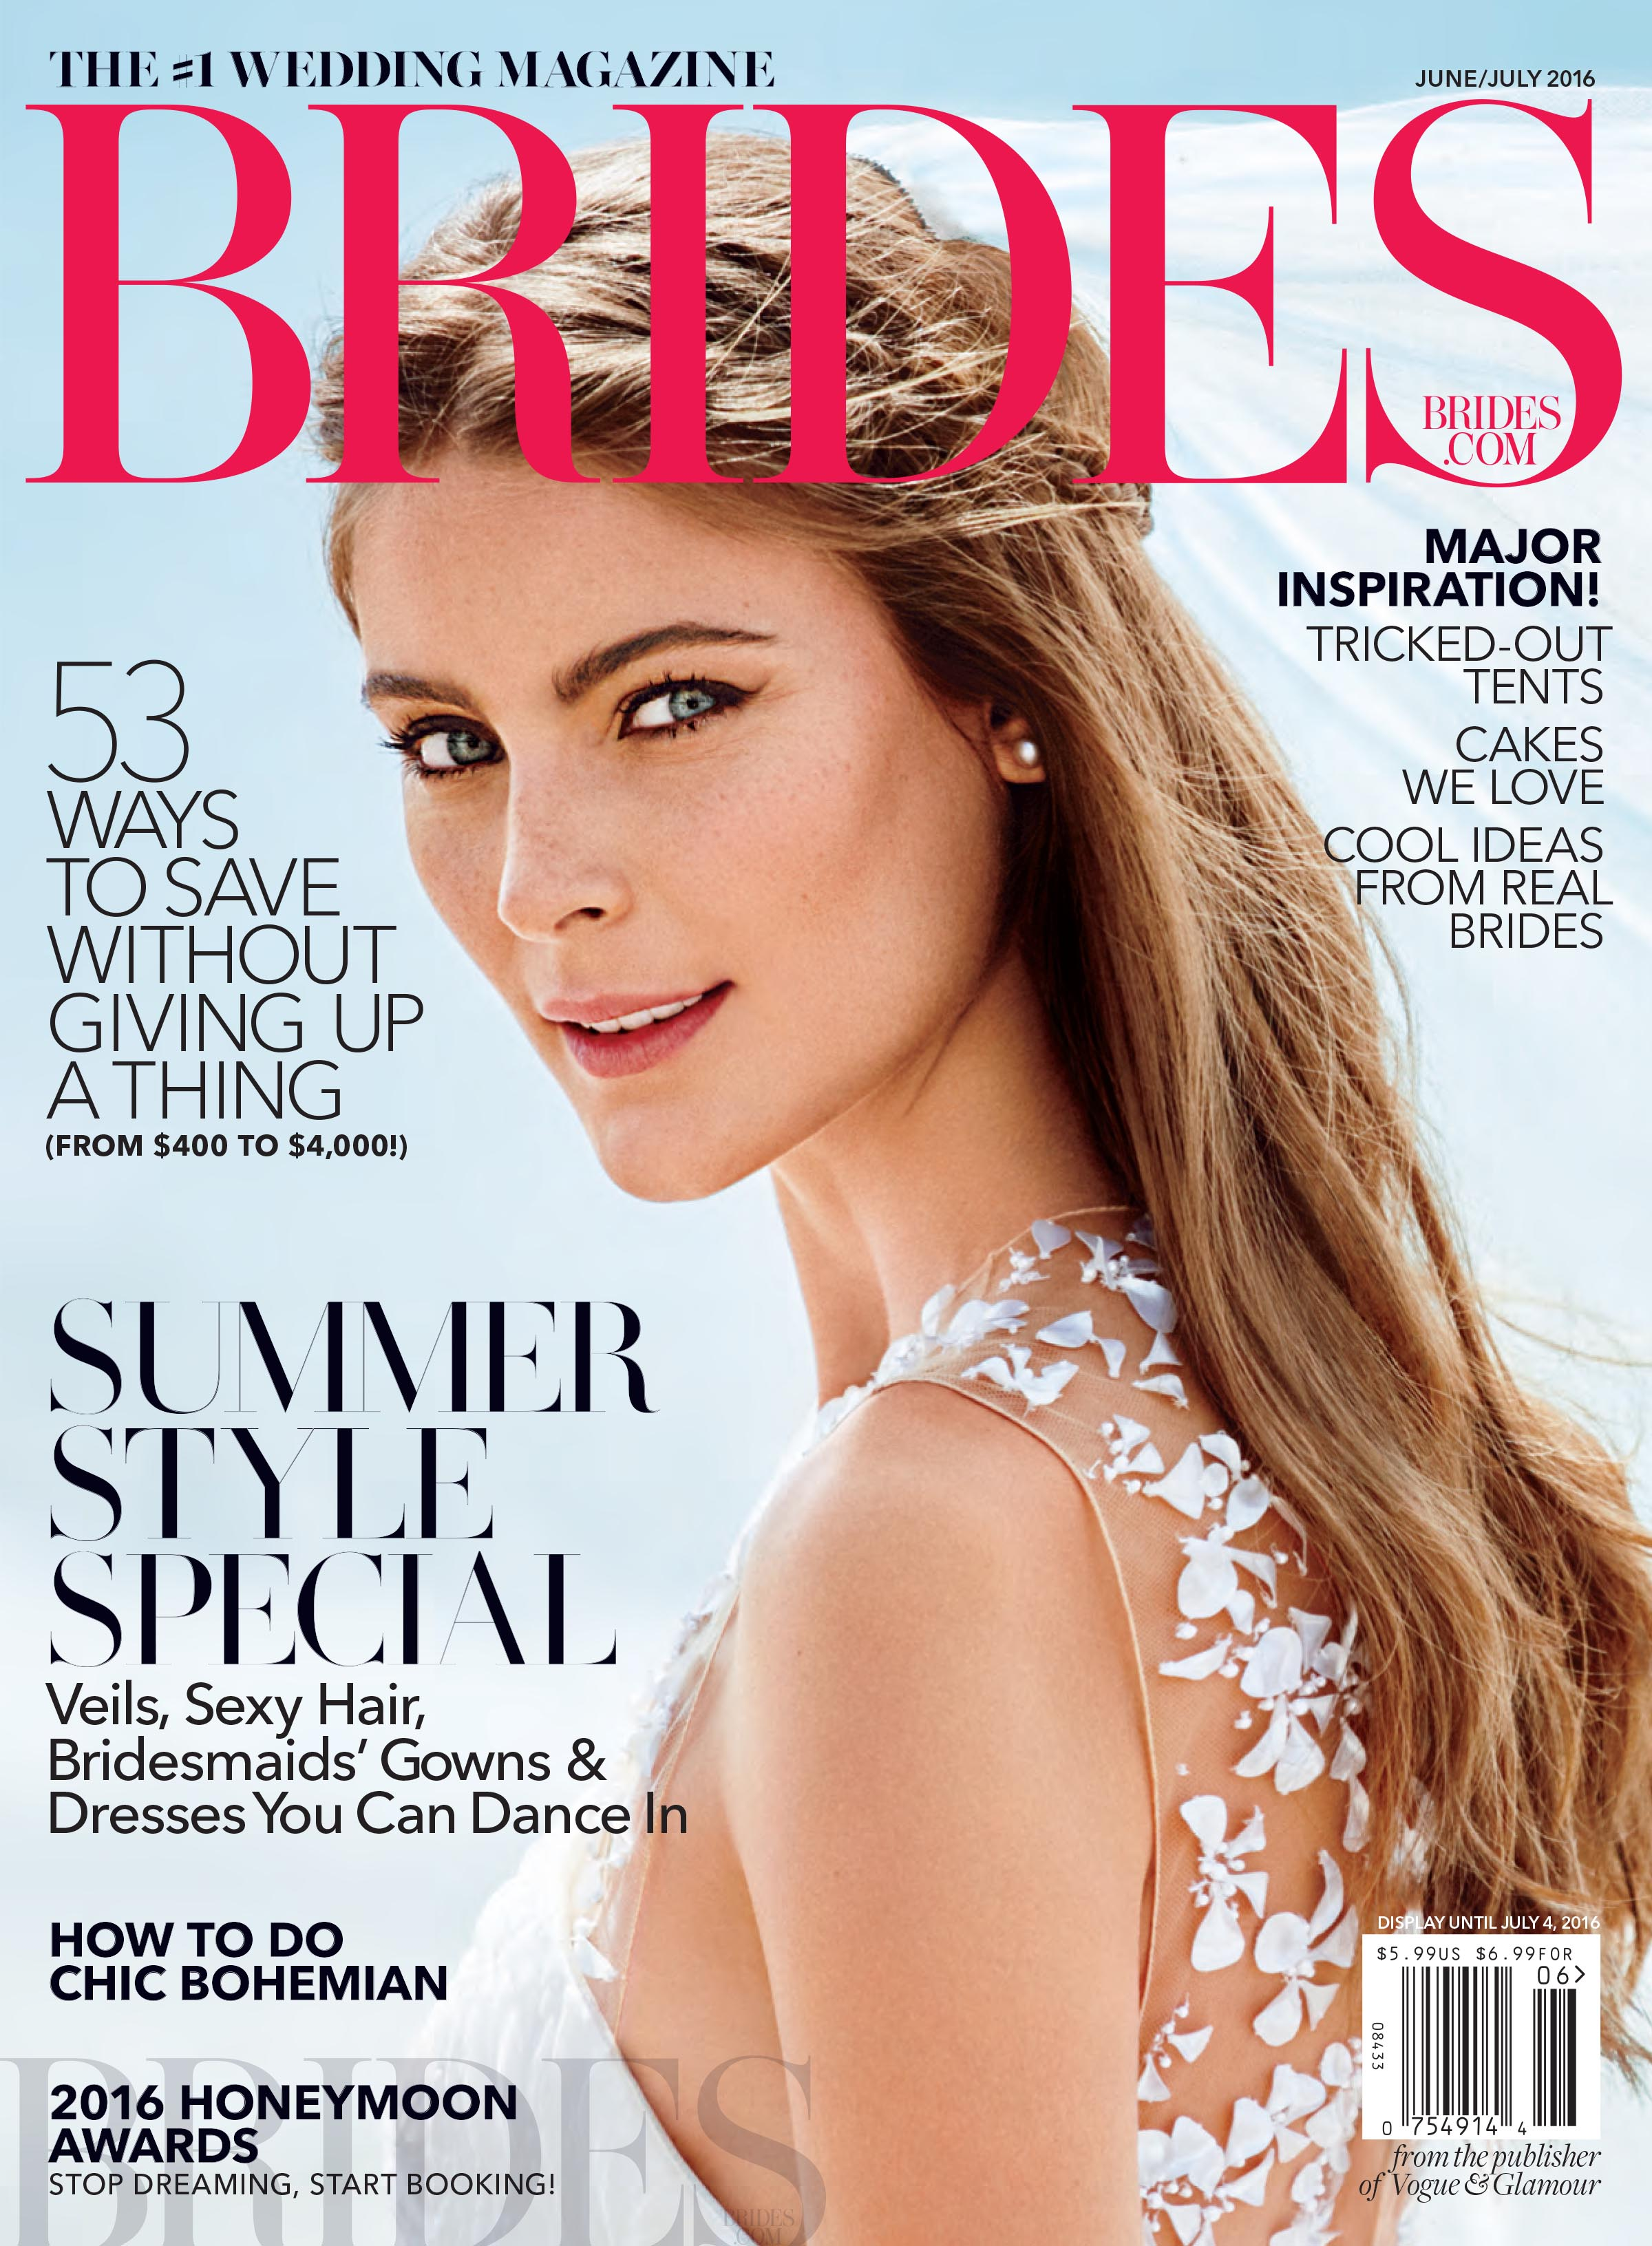 Brides Magazine cover June/July 2016 featuring Amelie & Laurent's wedding shot by Sylvie Gil